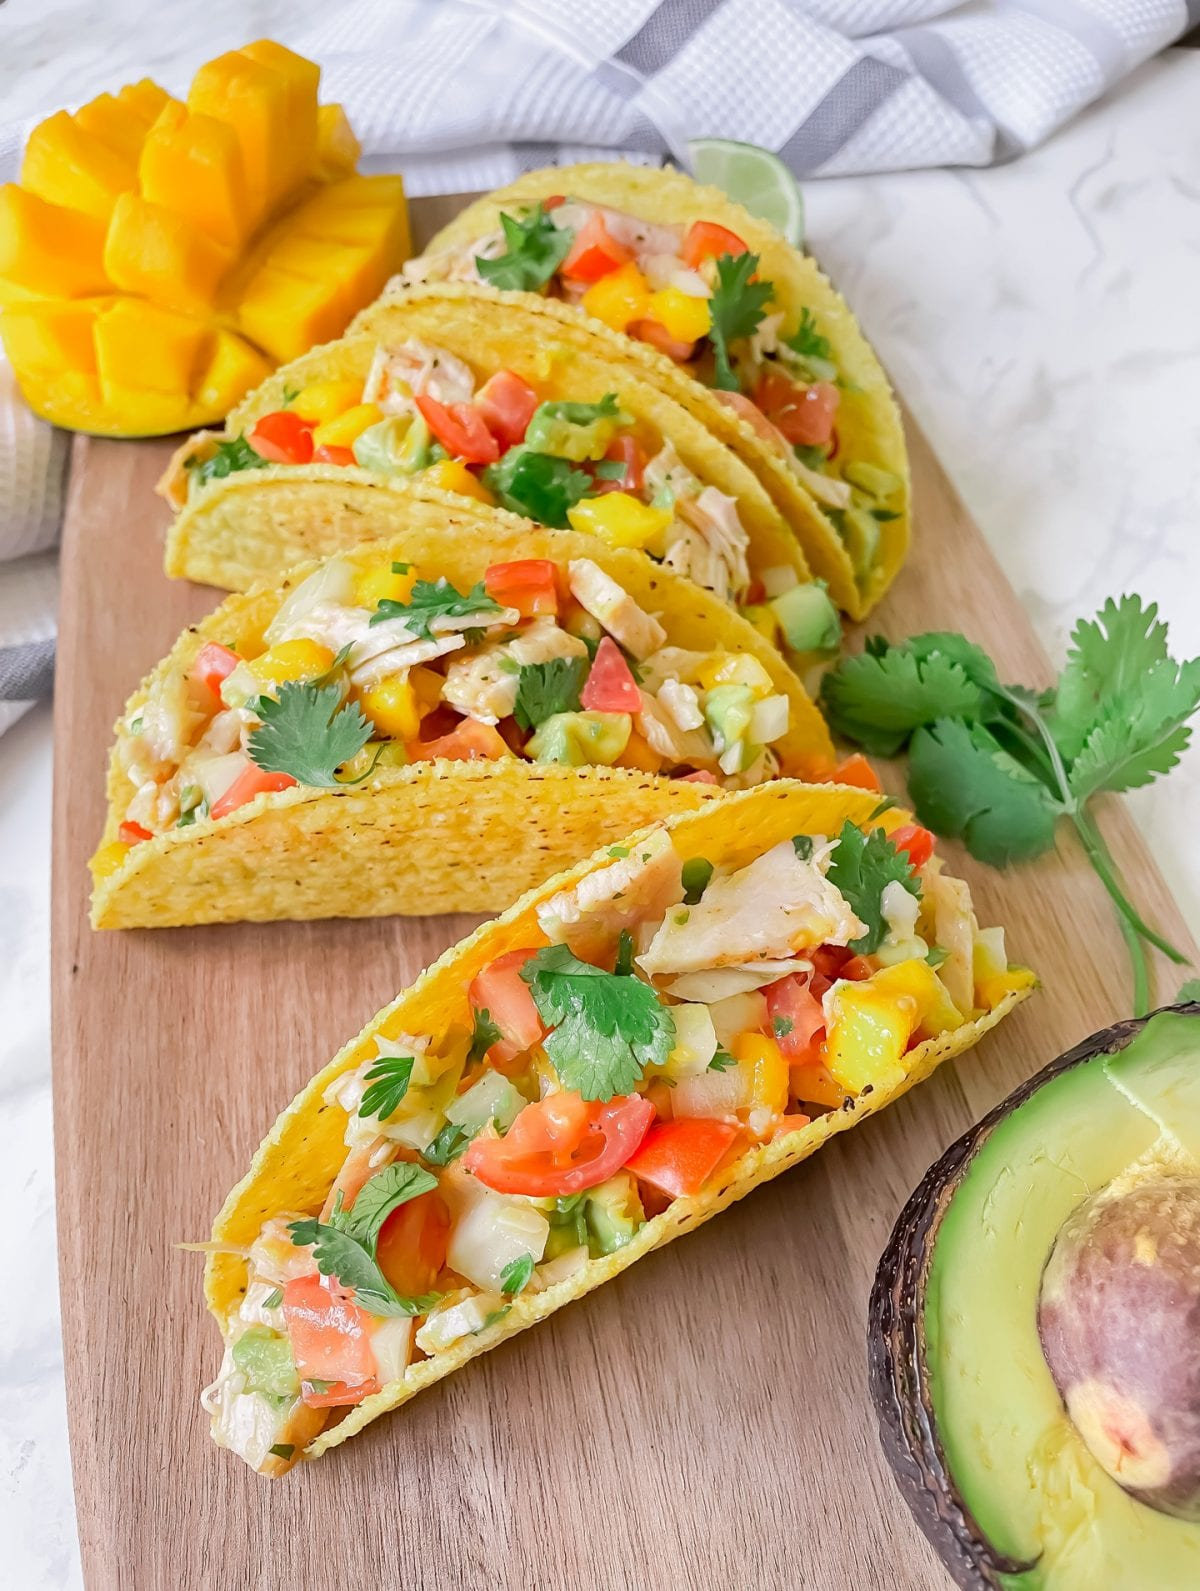 Heathy Recipes - Turkey tacos with mango avocado salsa. This easy recipe is healthy, tasty and packed with lean protein. Check out yesmissy.com for the full recipe.